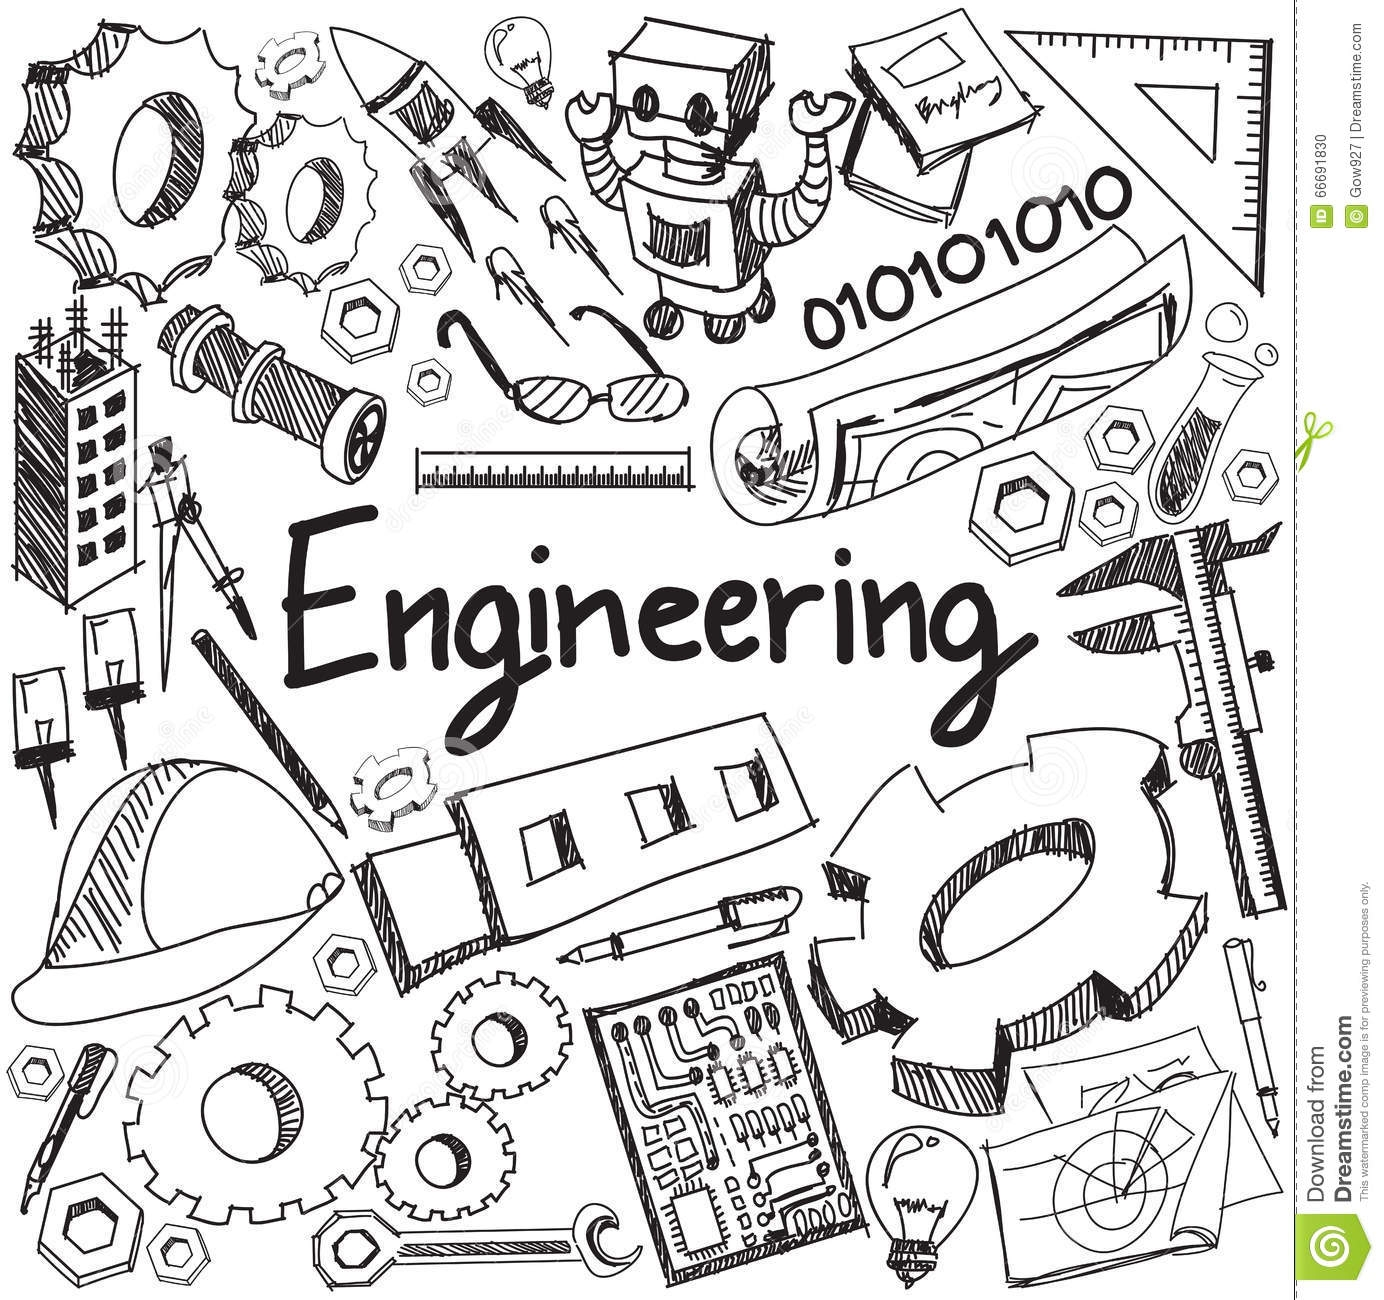 chemistry coloring pages - stock illustration mechanical electrical civil chemical other engineering ed education profession handwriting doodle icon tool sign symbol image